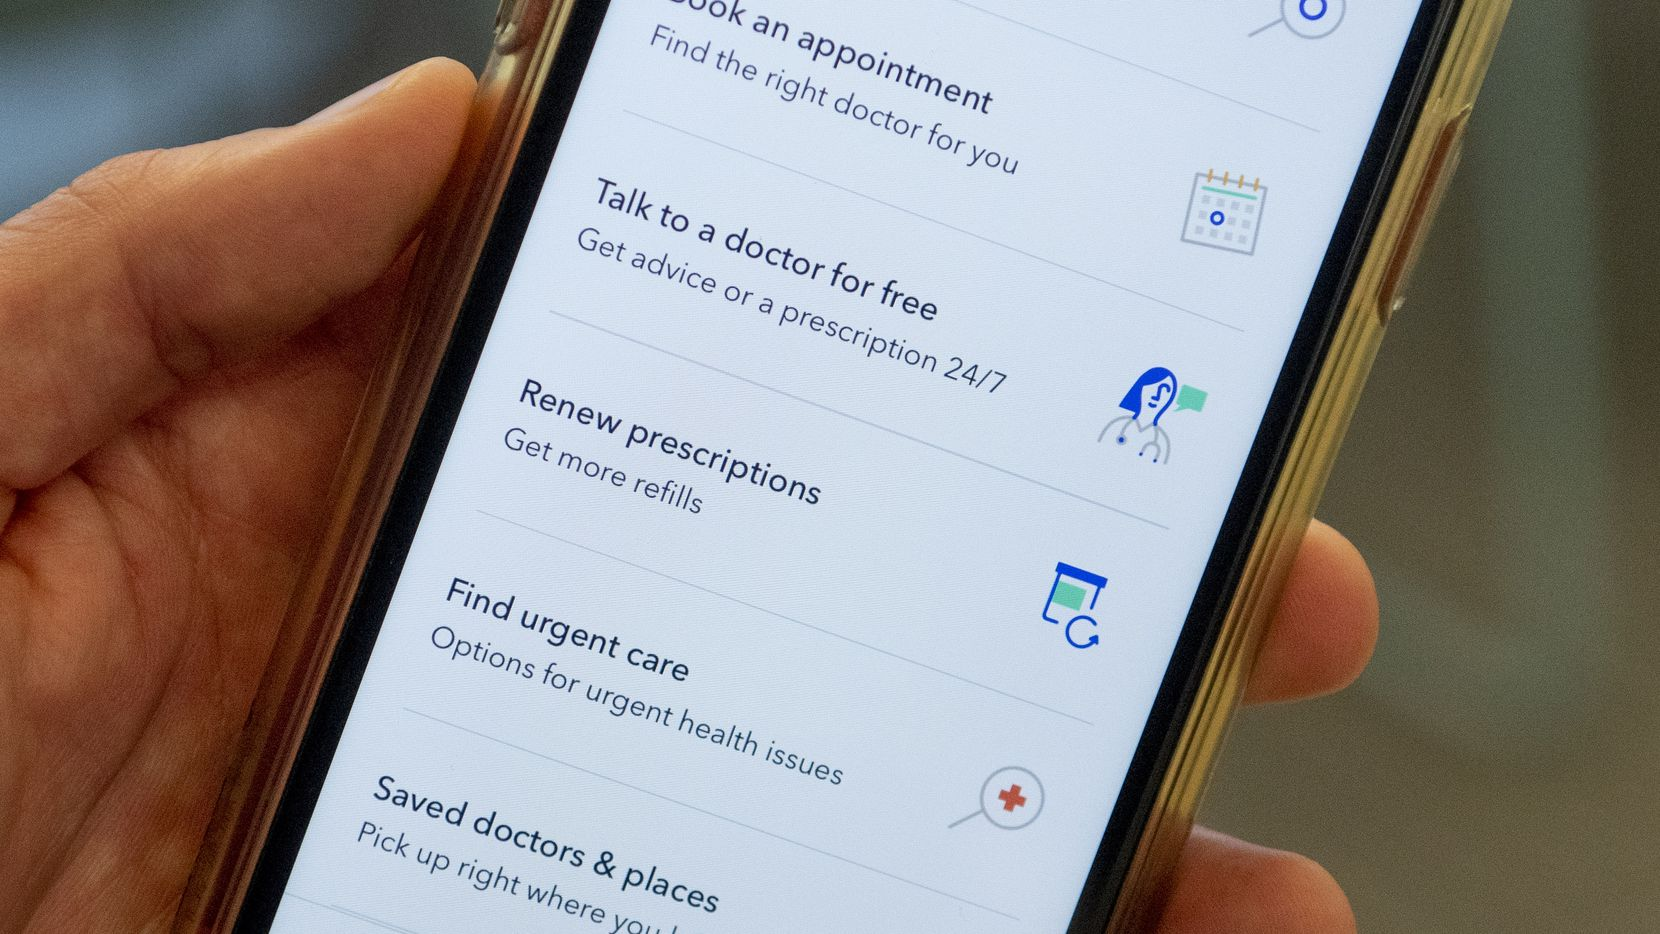 Oscar Health says its app helps improve its customer service — one of the biggest consumer complaints about health care.